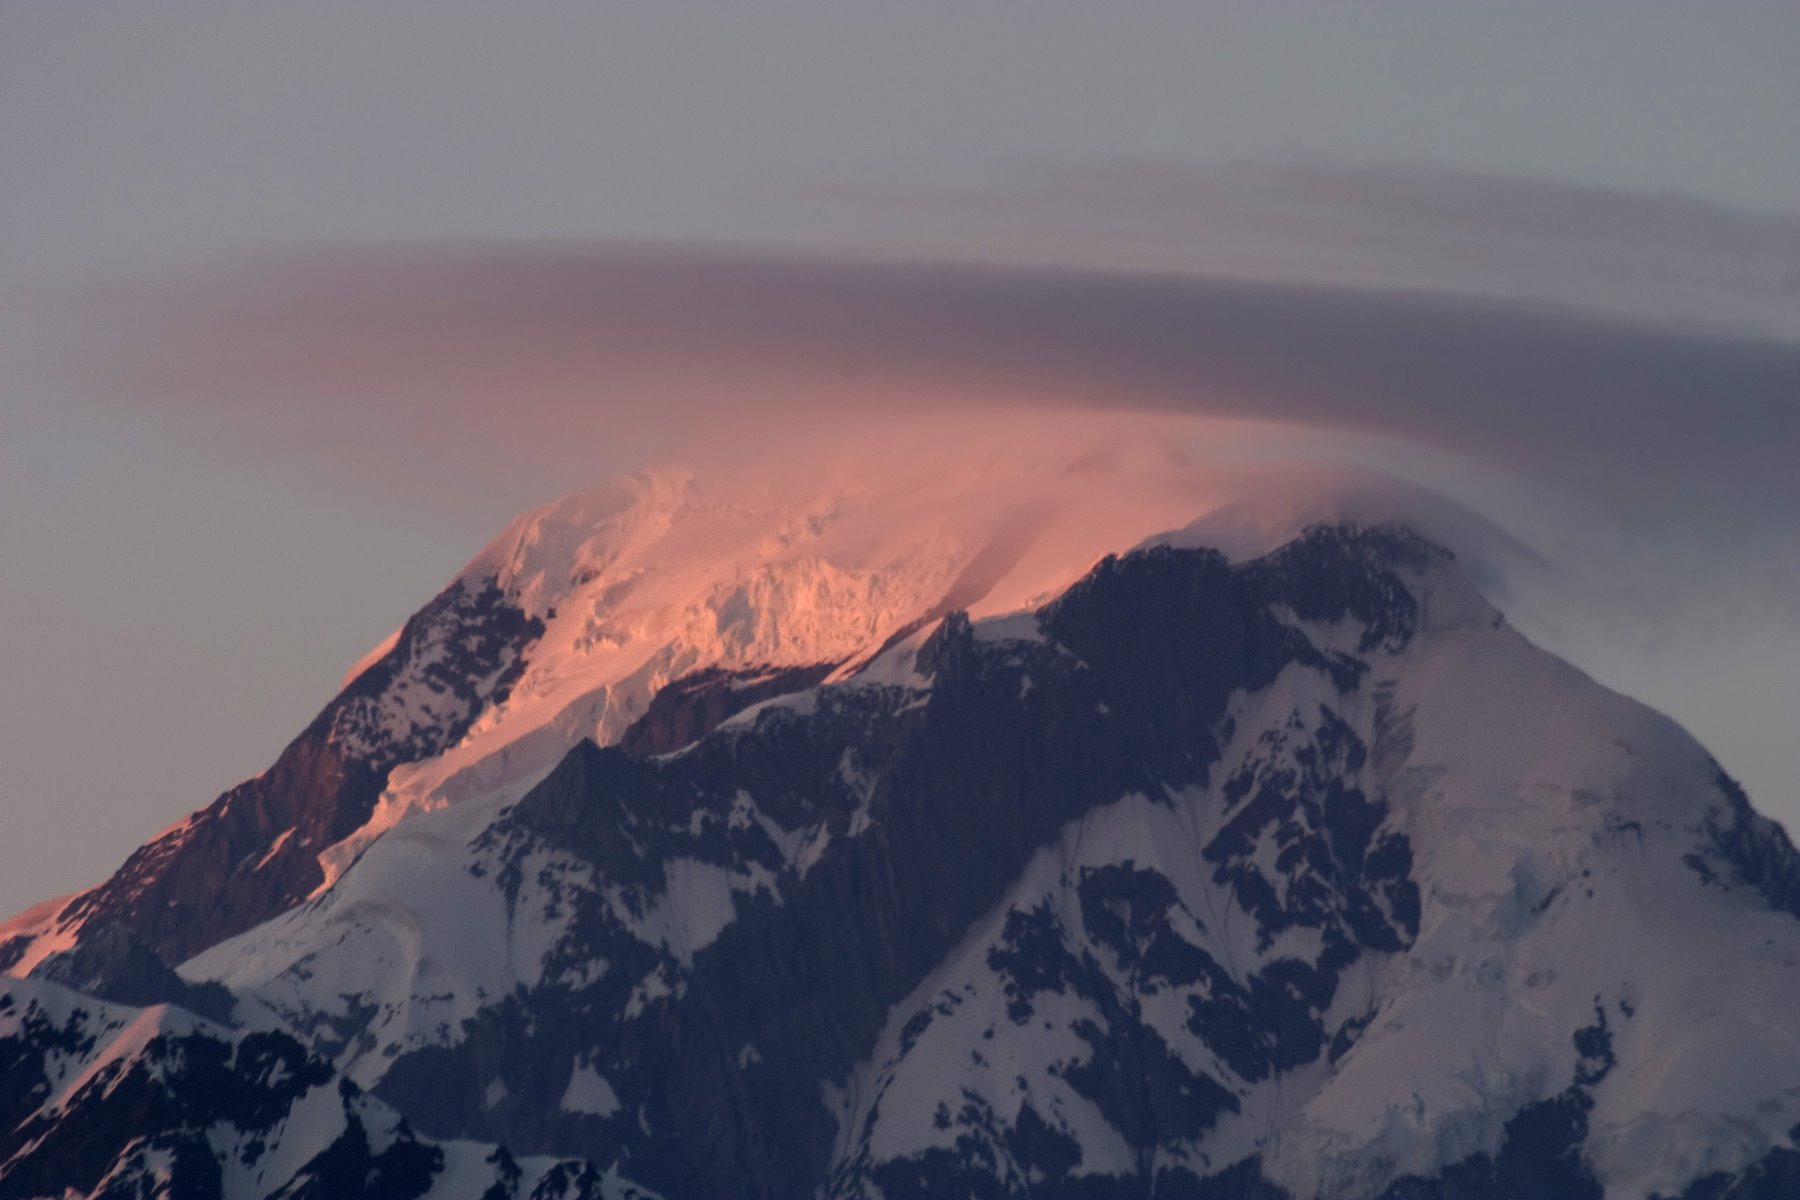 Fairweather Range is one of the tallest mountain ranges on the planet.